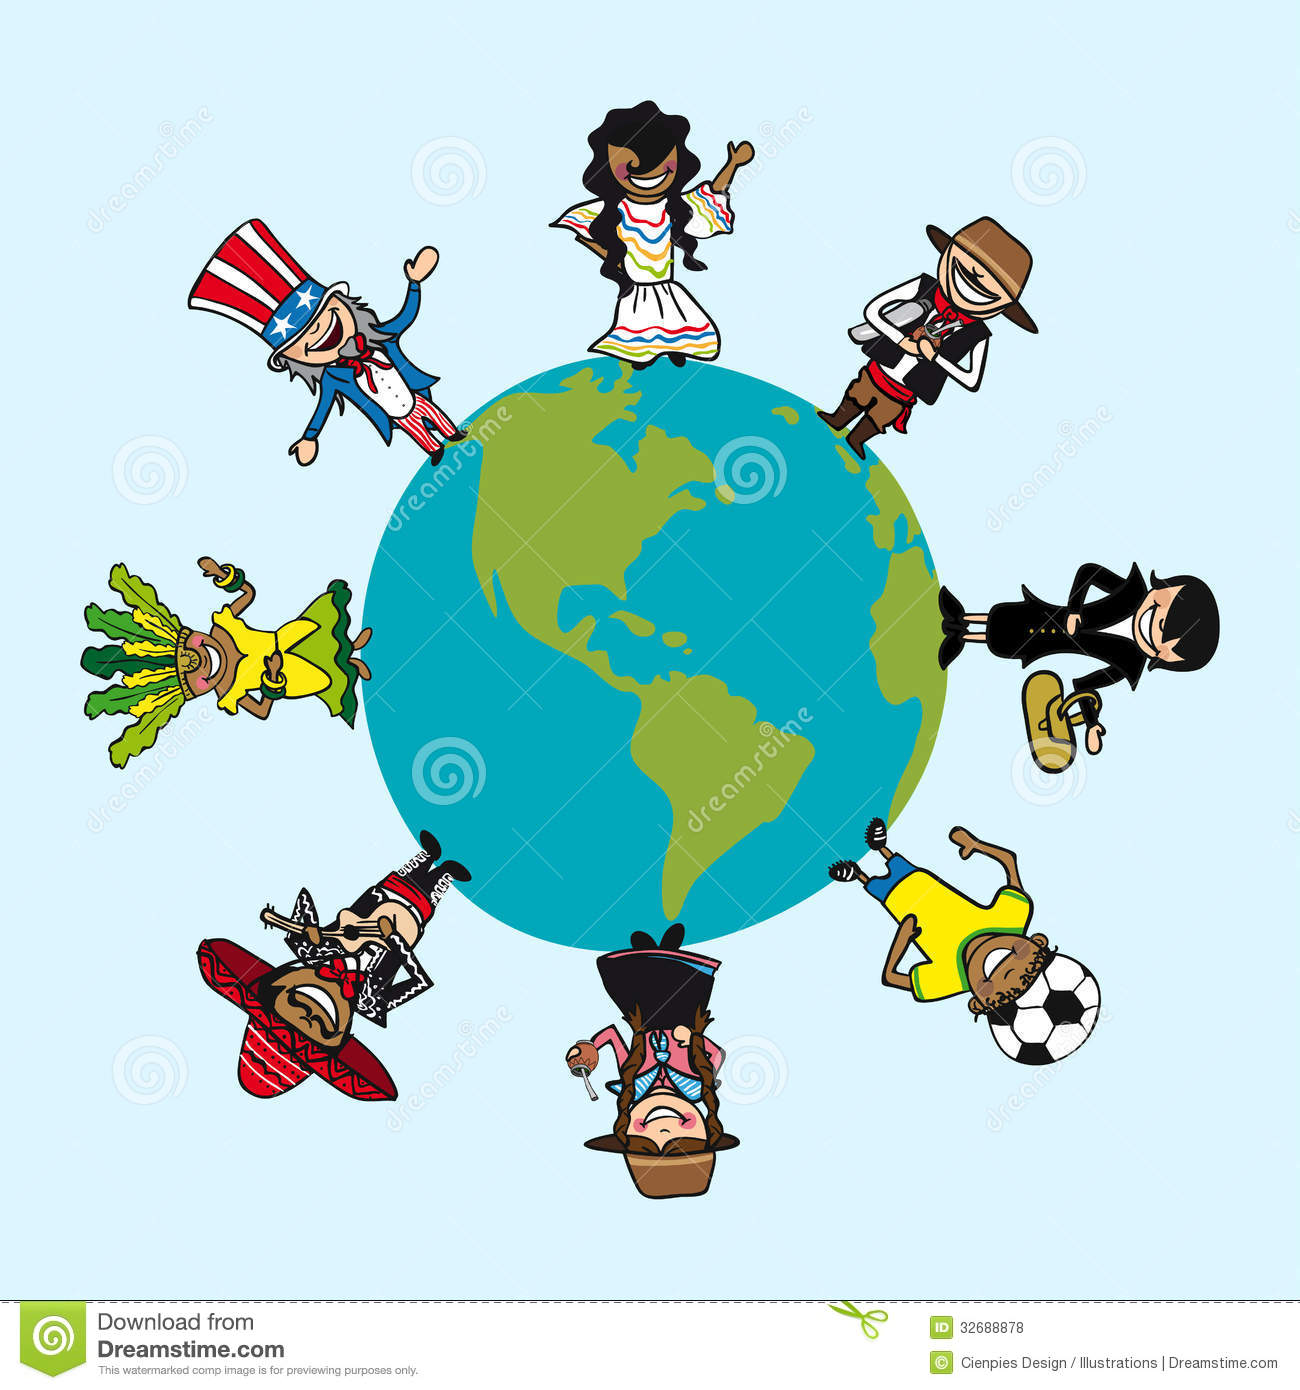 Diversity people cartoons over world map stock vector image diversity people cartoons over world map sciox Images